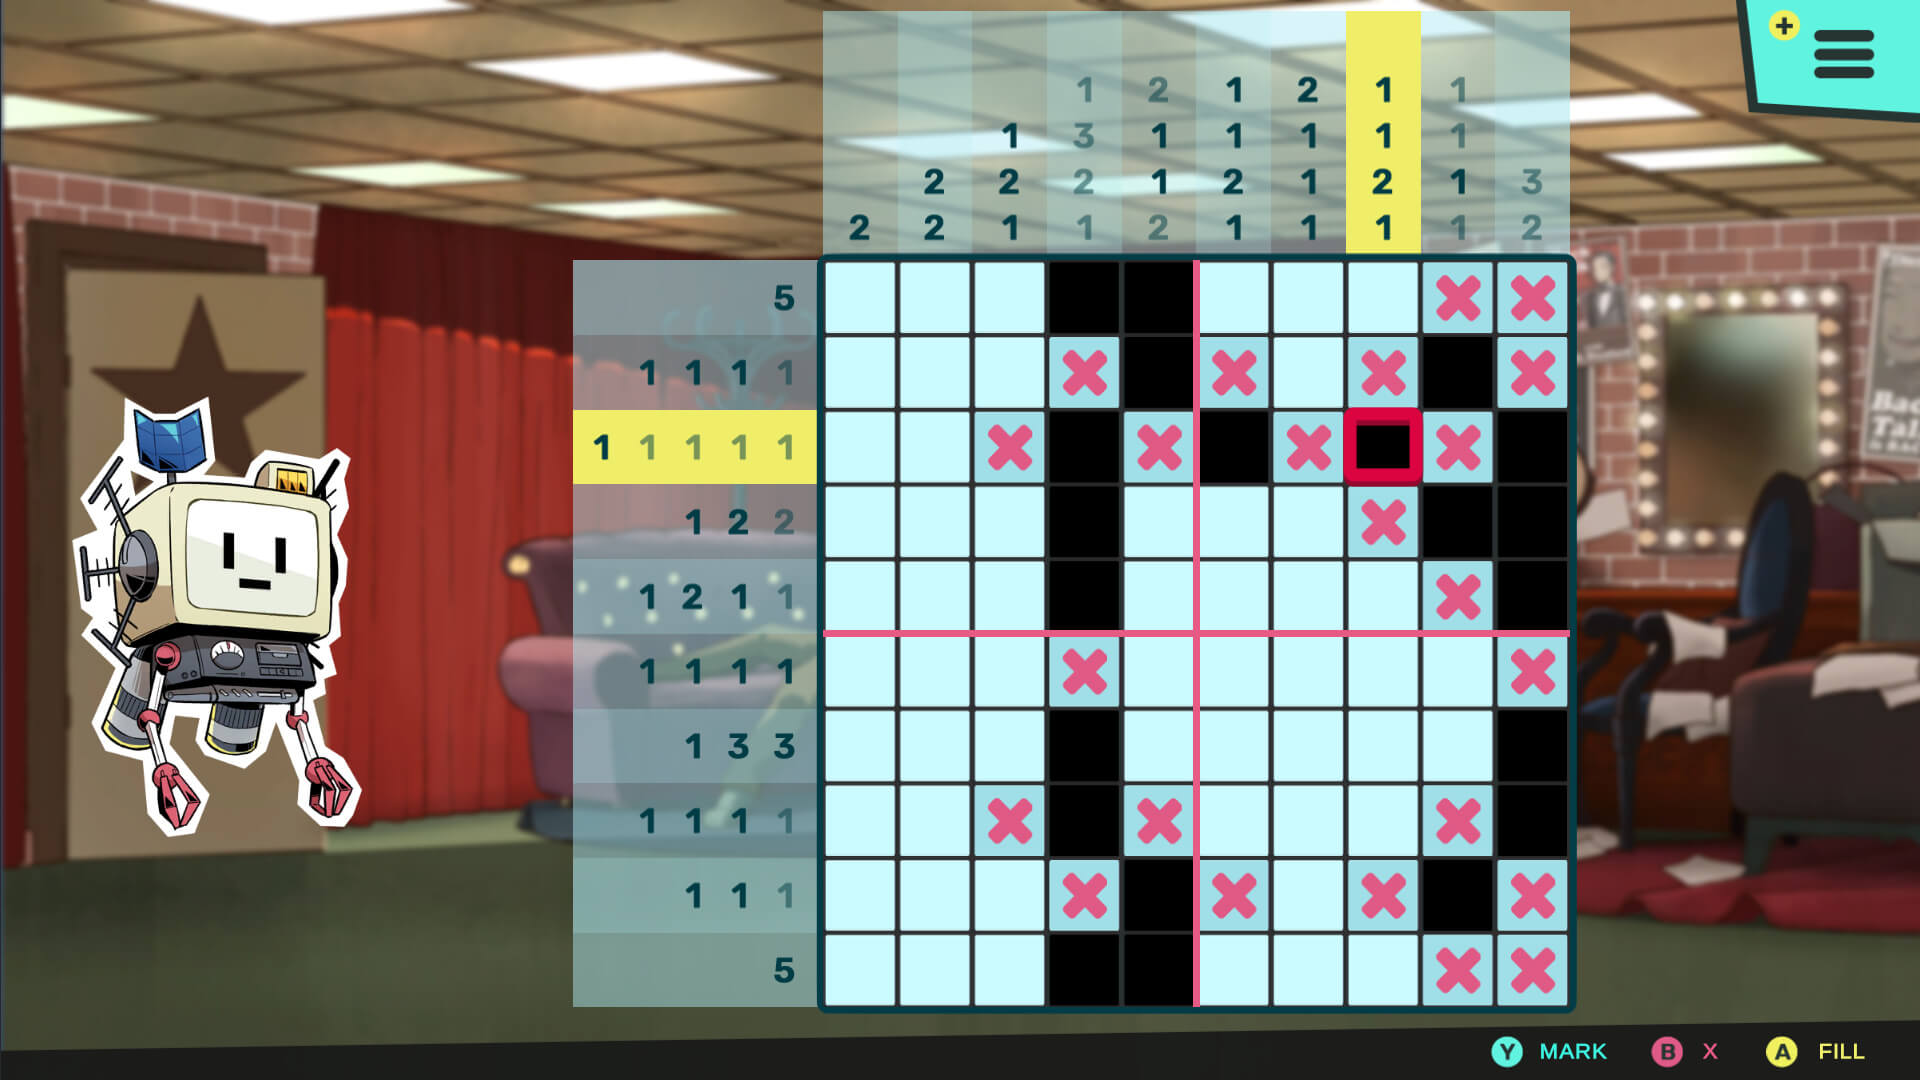 http://www.cosmocover.com/wp-content/uploads/2019/10/381825d9c60785cc639.56305919-Puzzle.jpg